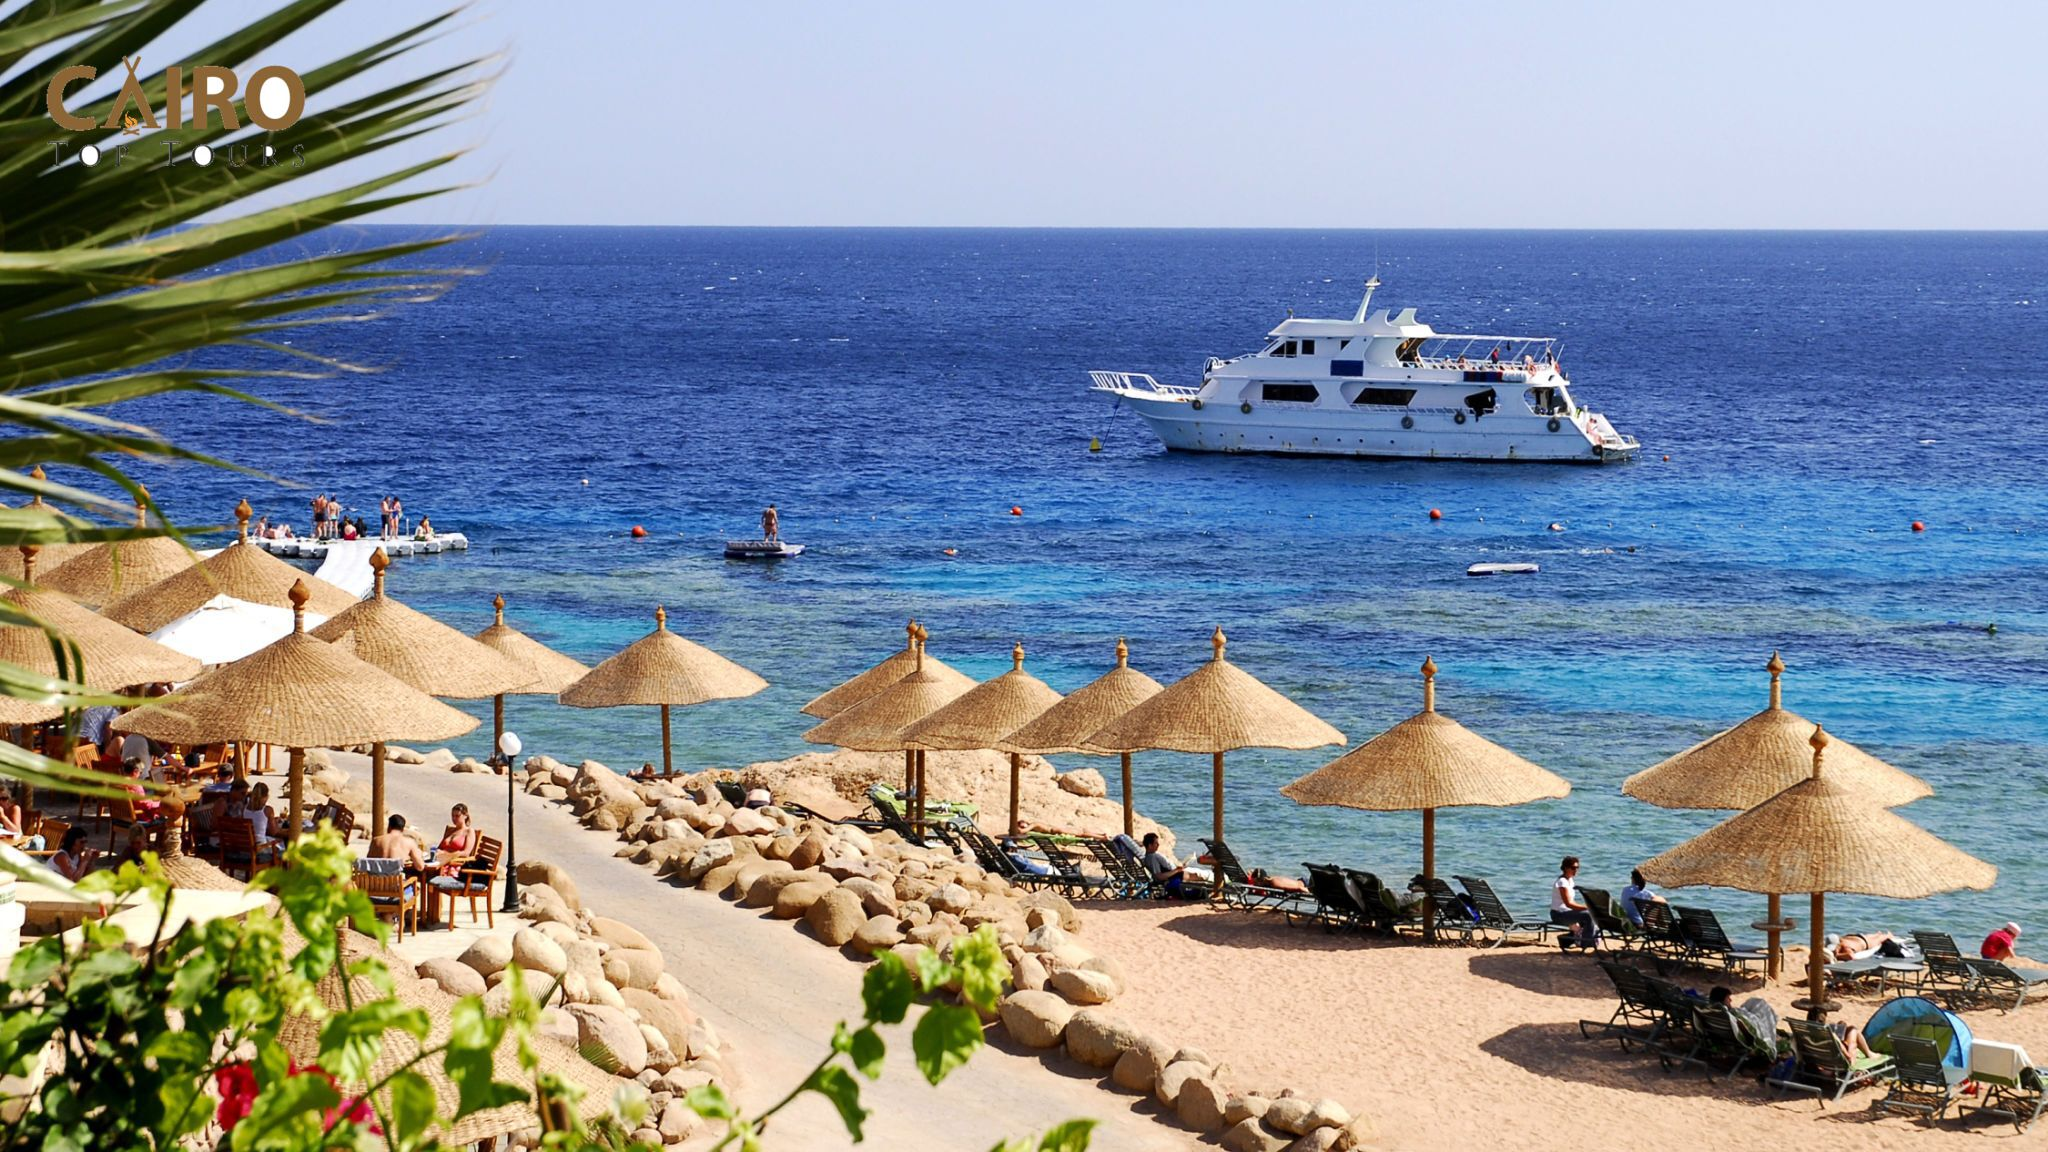 Sharm El Sheikh Day Tours and Excursions   Tours in Sharm El Sheikh